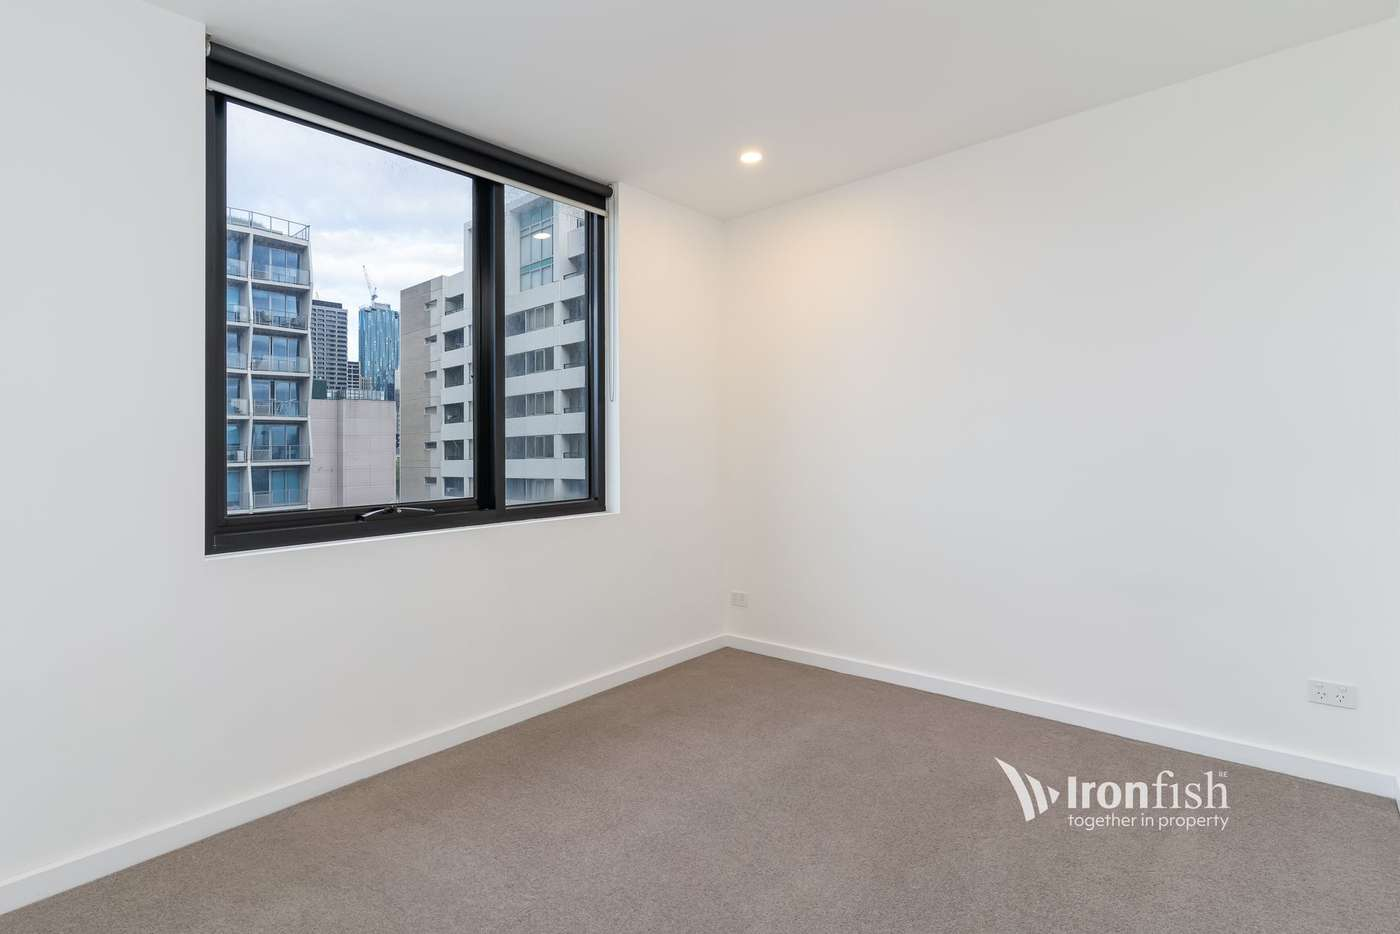 Fifth view of Homely apartment listing, 901/386 Spencer Street, West Melbourne VIC 3003